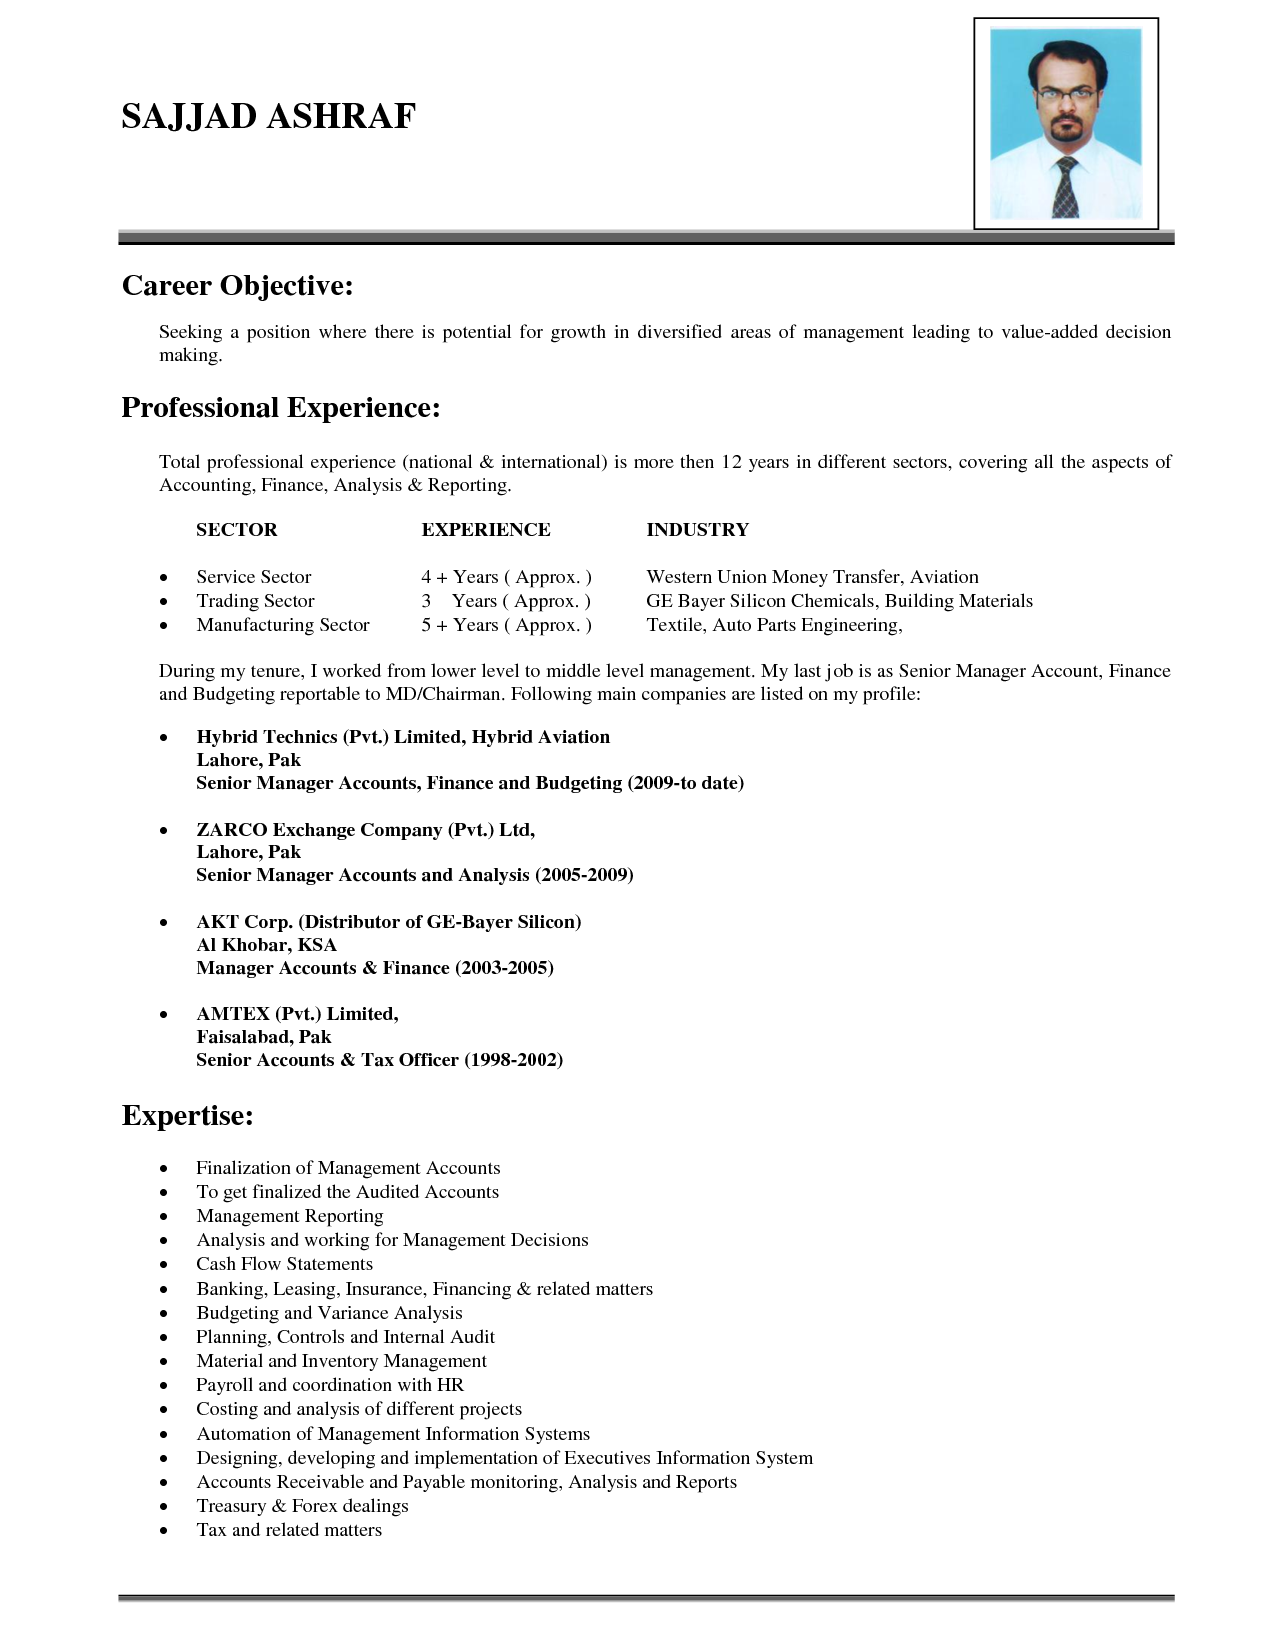 Ideal resume example